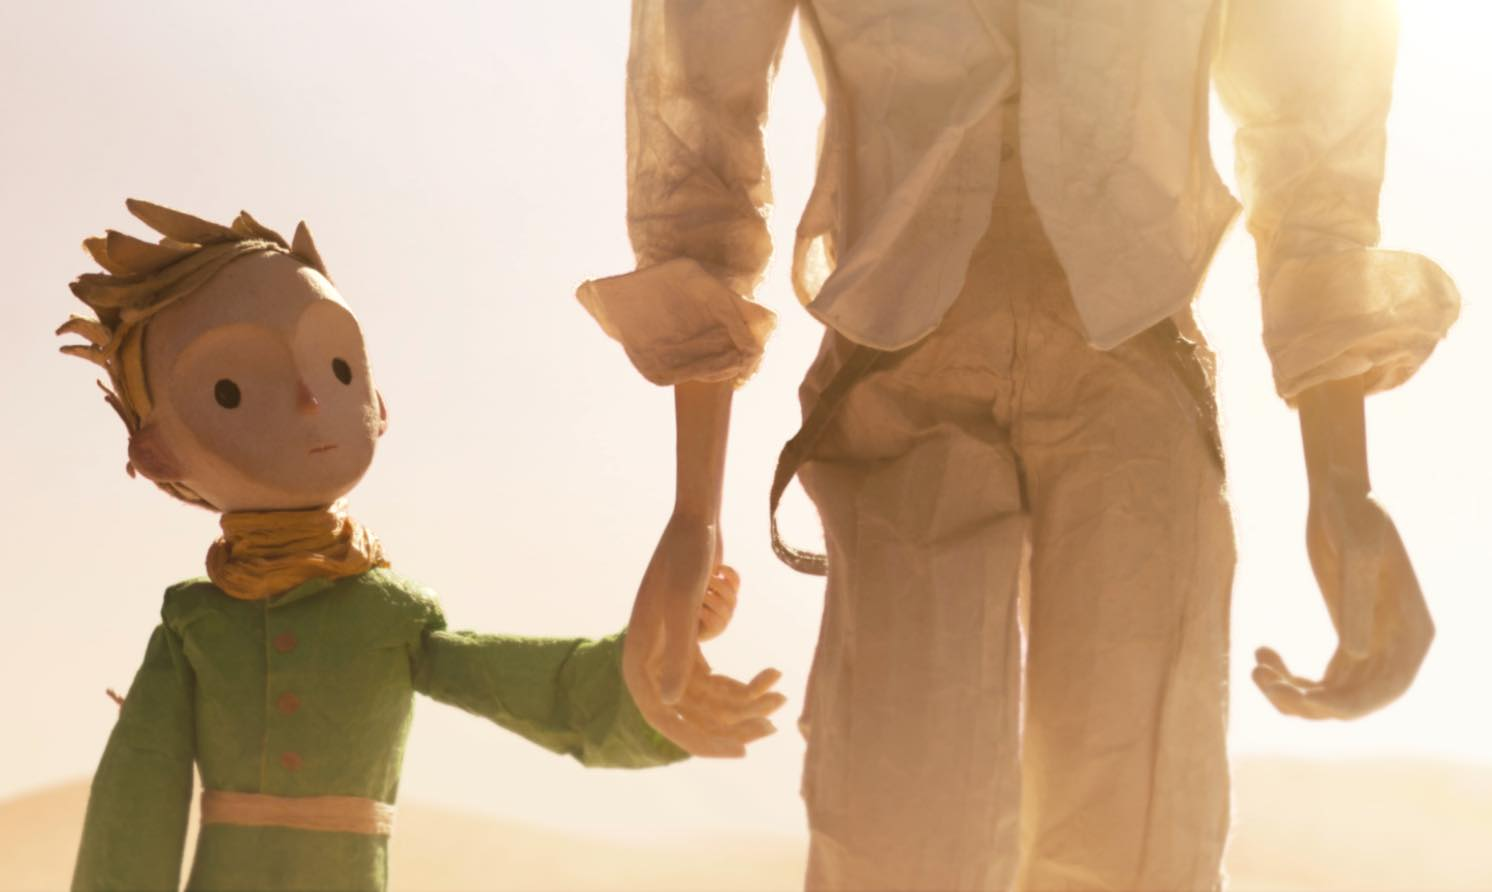 The Little Prince Antoine de Saint-Exupery Animation